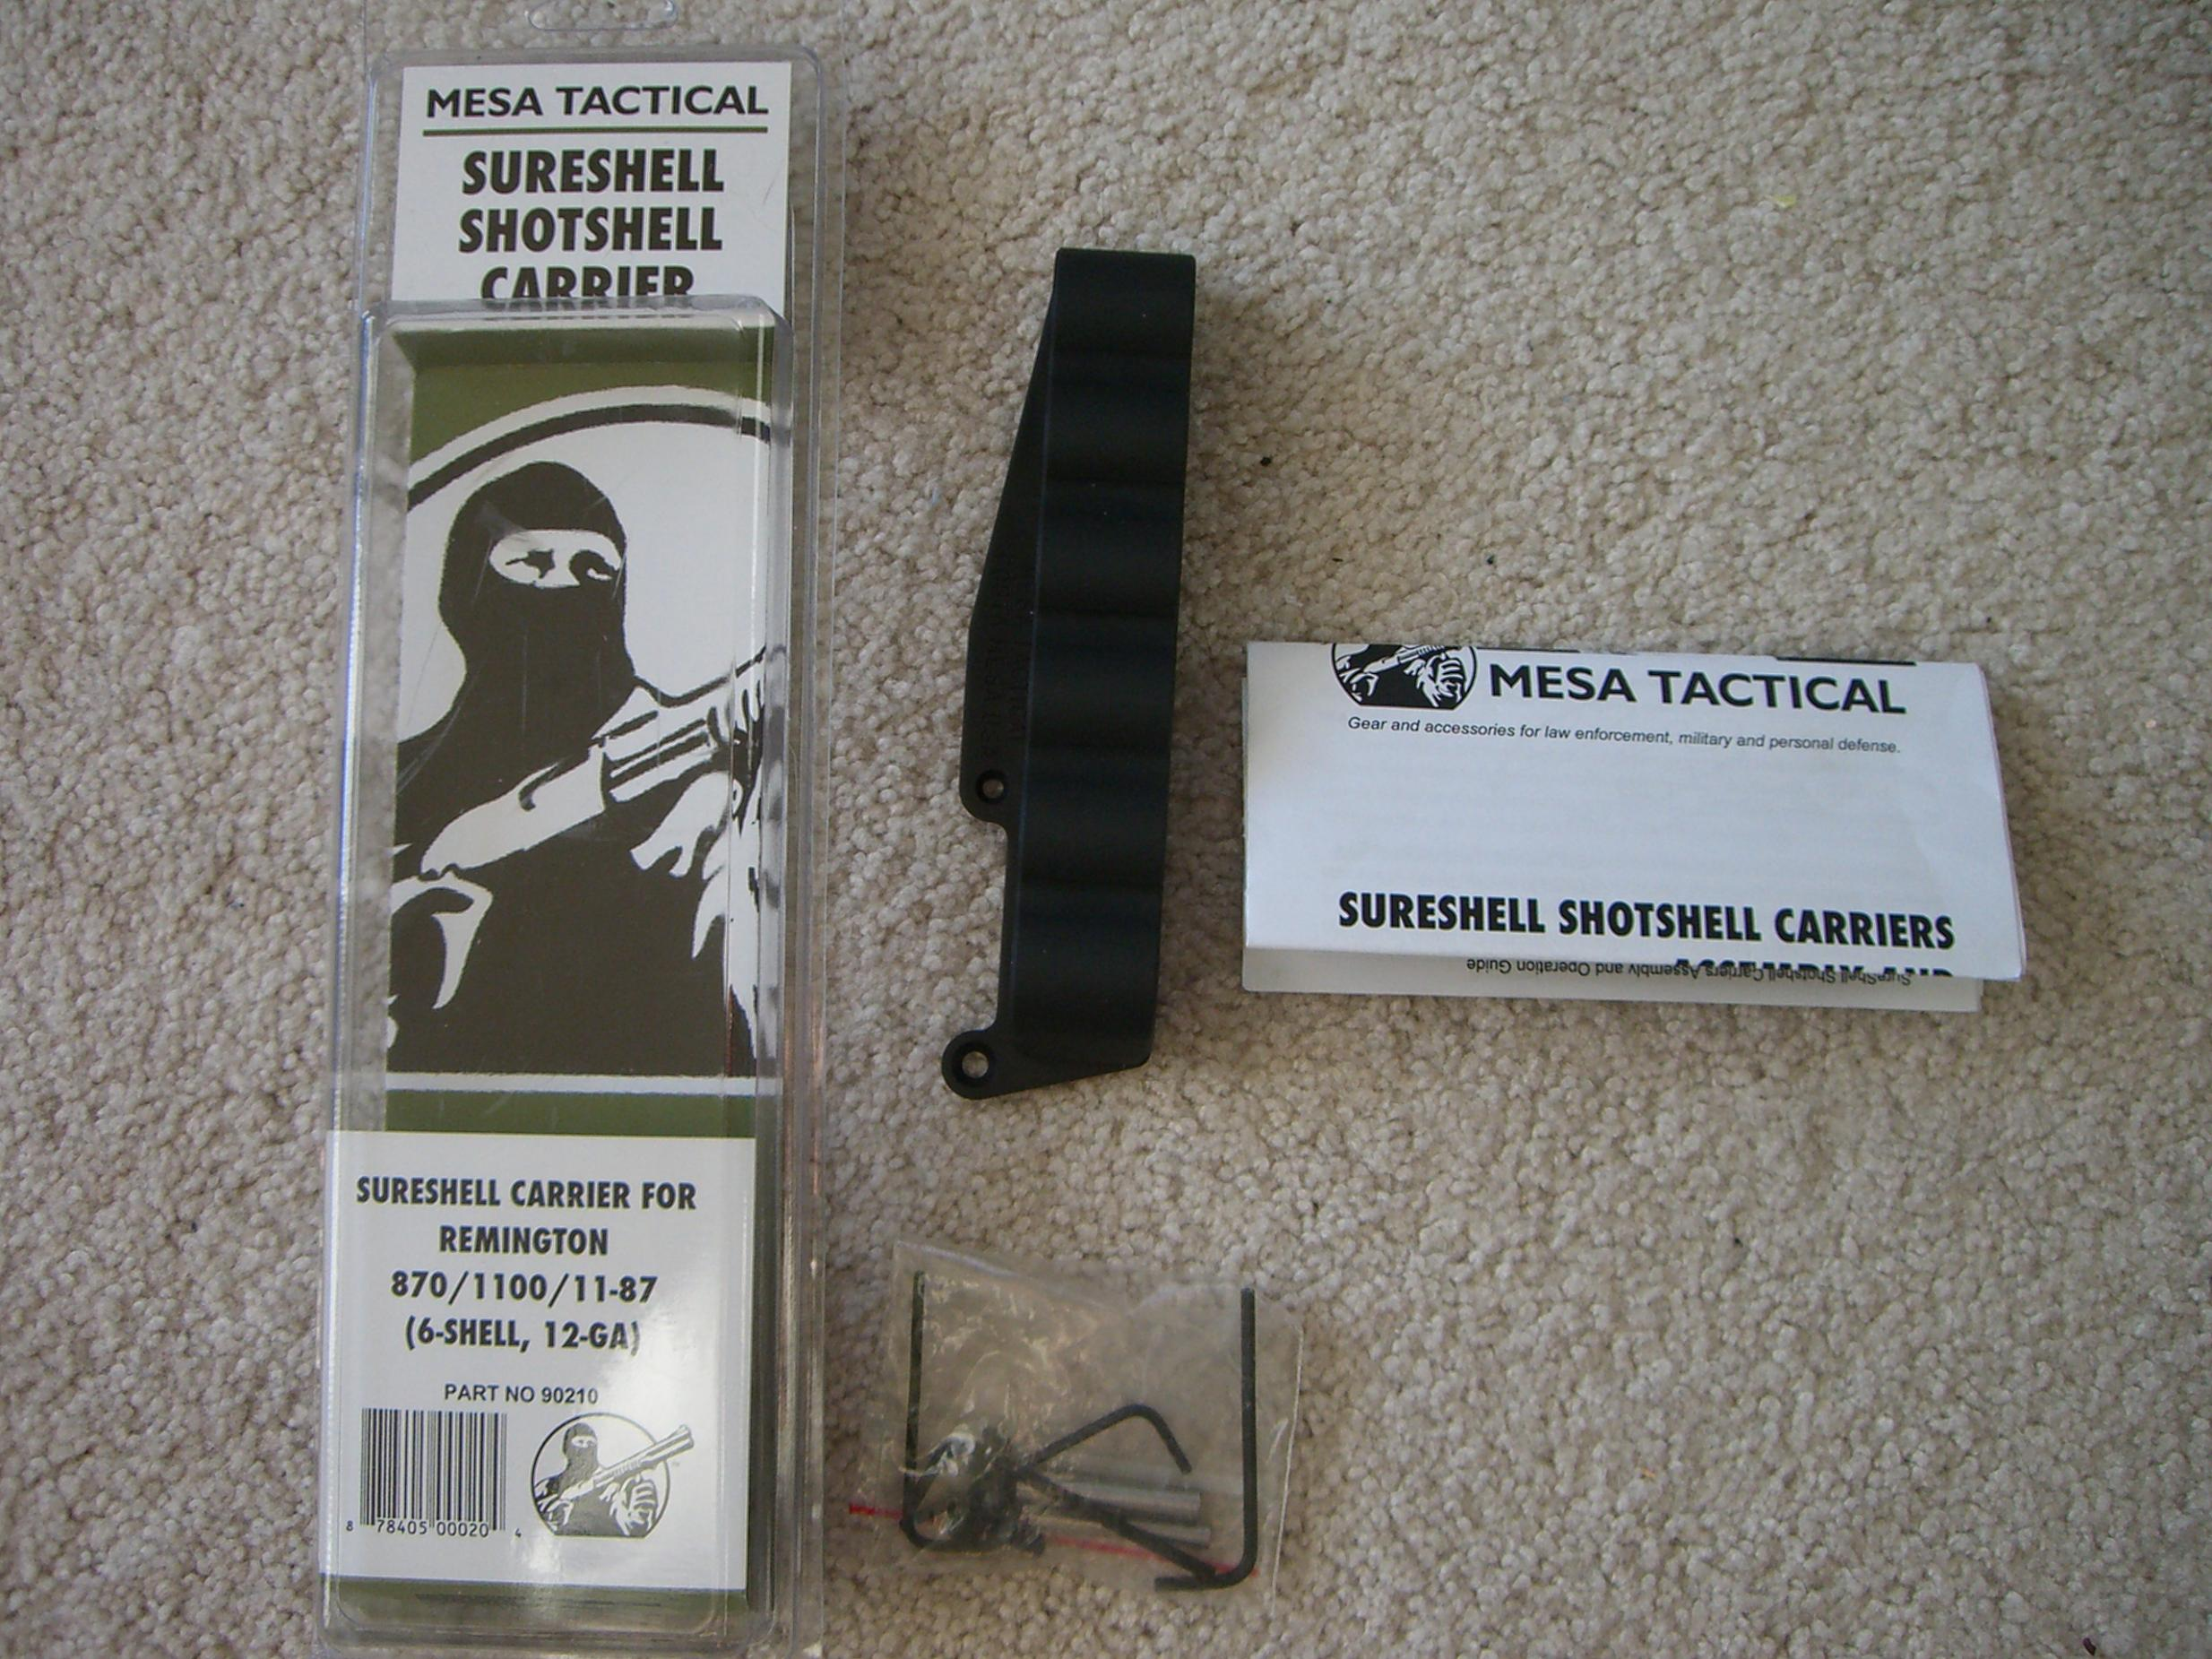 Mesa Tactical 6-shell carrier for 870, 1100 and 11-87-mesa-shotshell-carrier.jpg